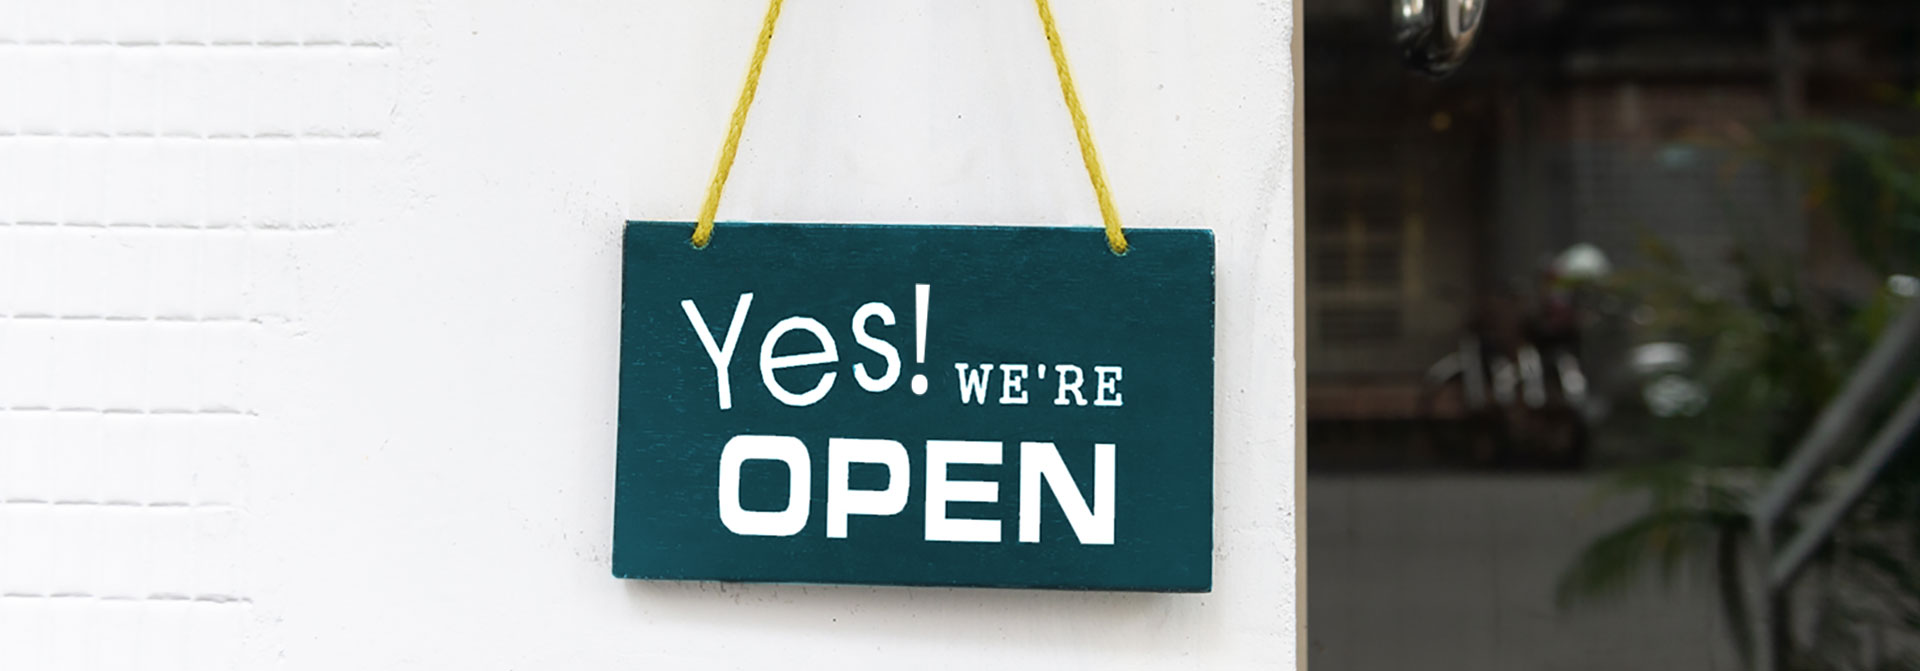 Yes We Are Open sign for business planning for pandemic